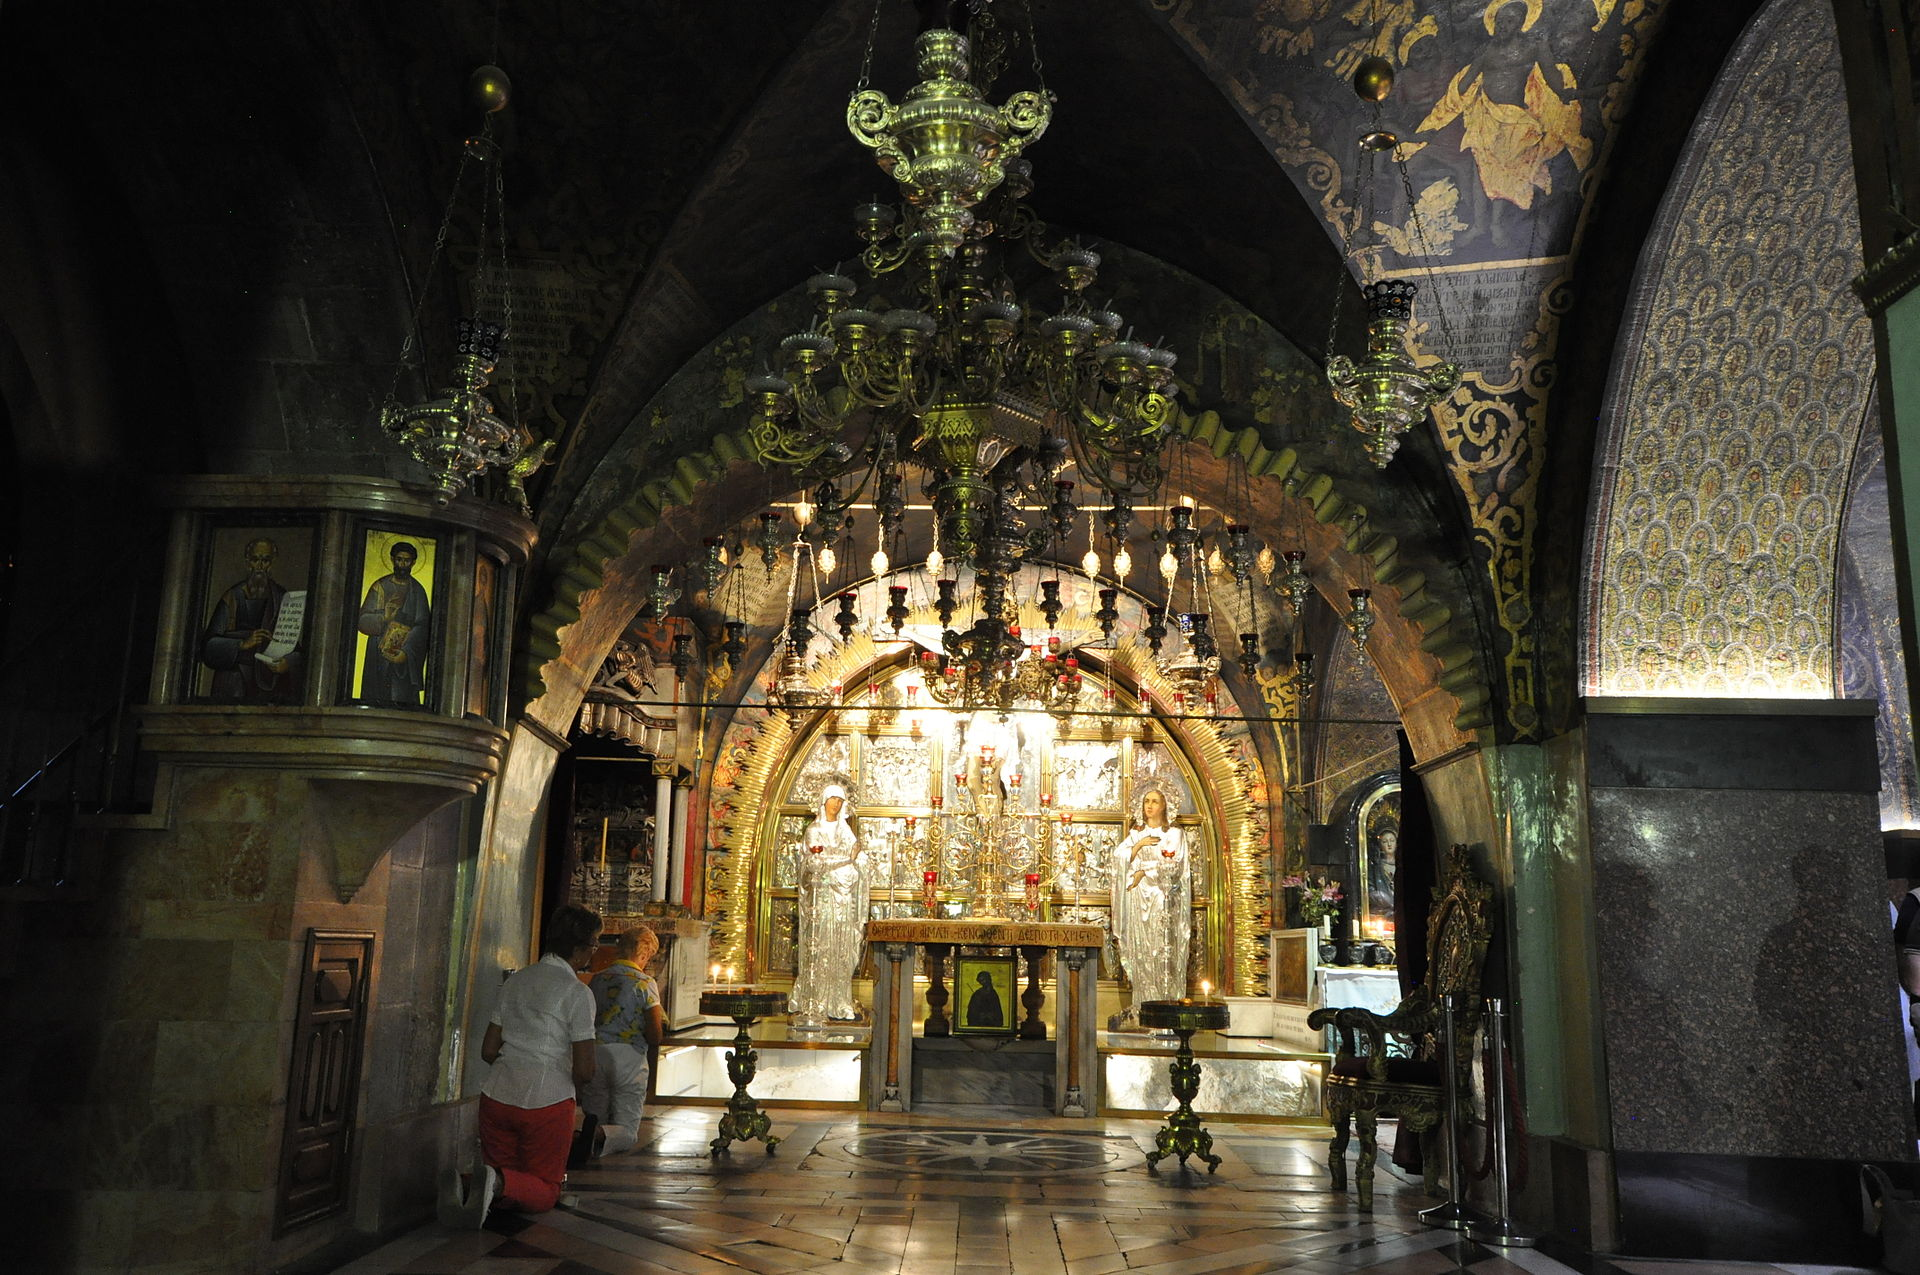 The Crucifixion Altar Church of the Holy Sepulchre